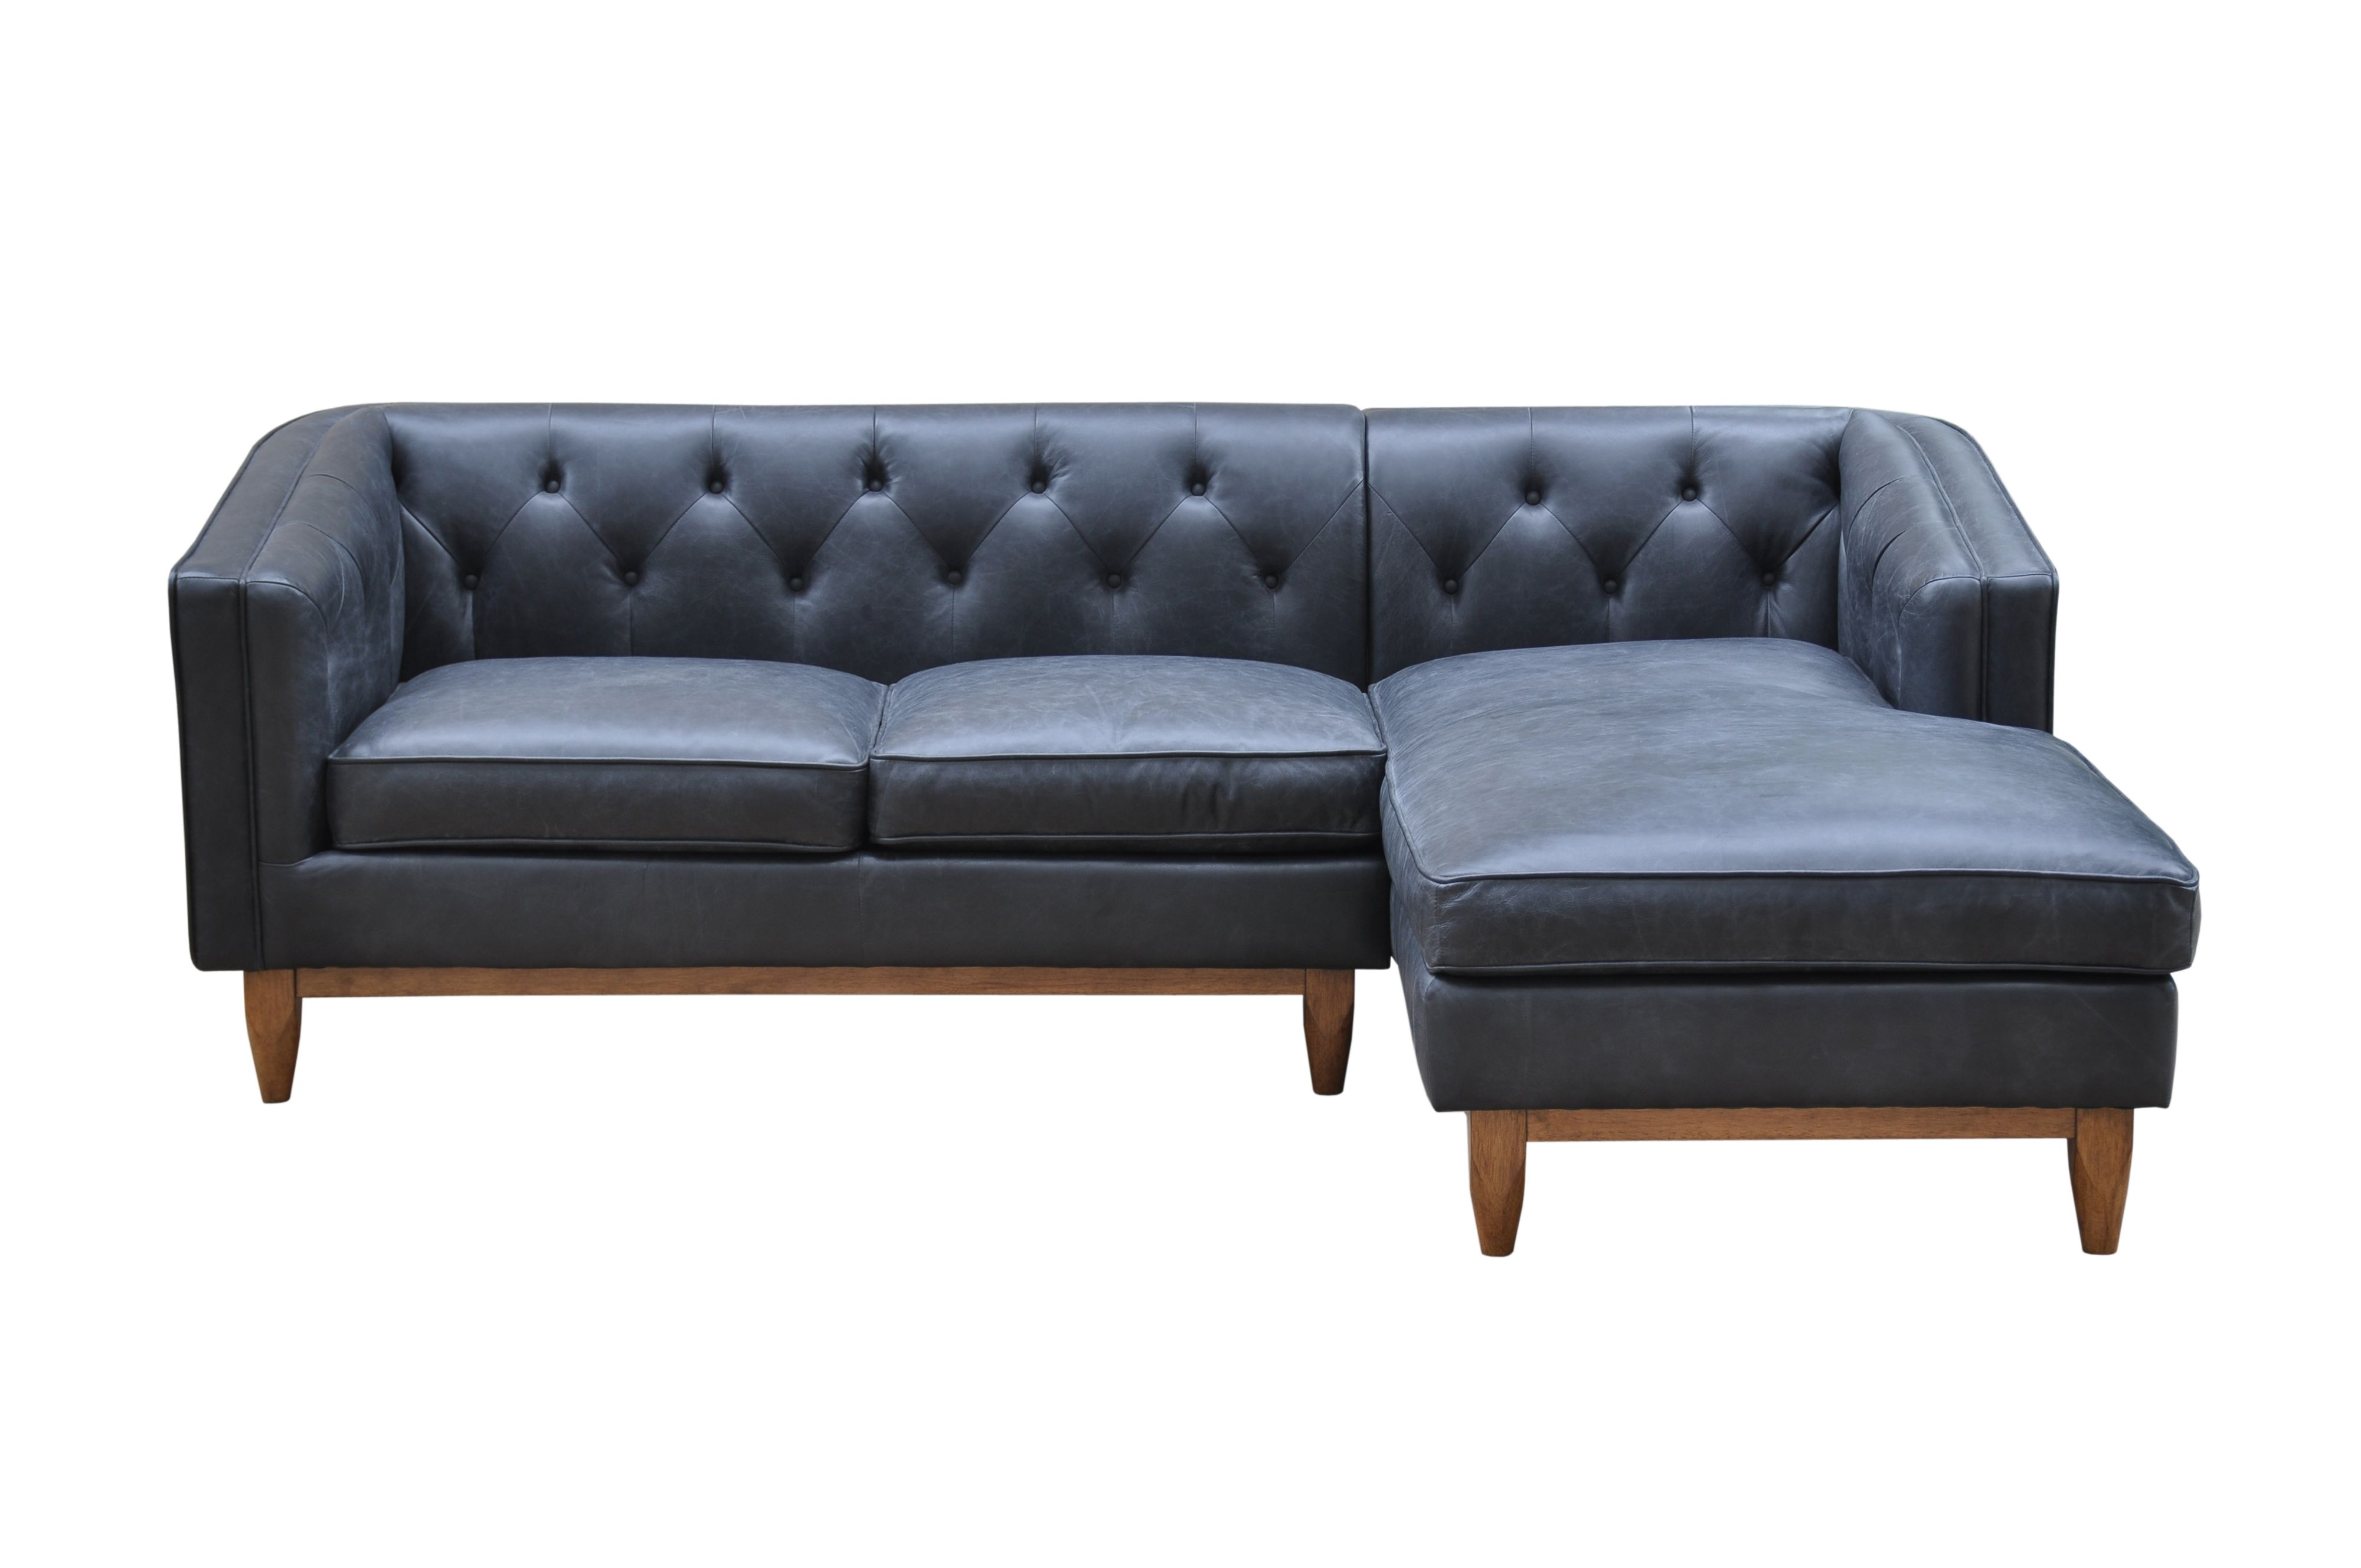 Buy Cheap Chaise Sofa Compare Sofas Prices For Best UK Deals